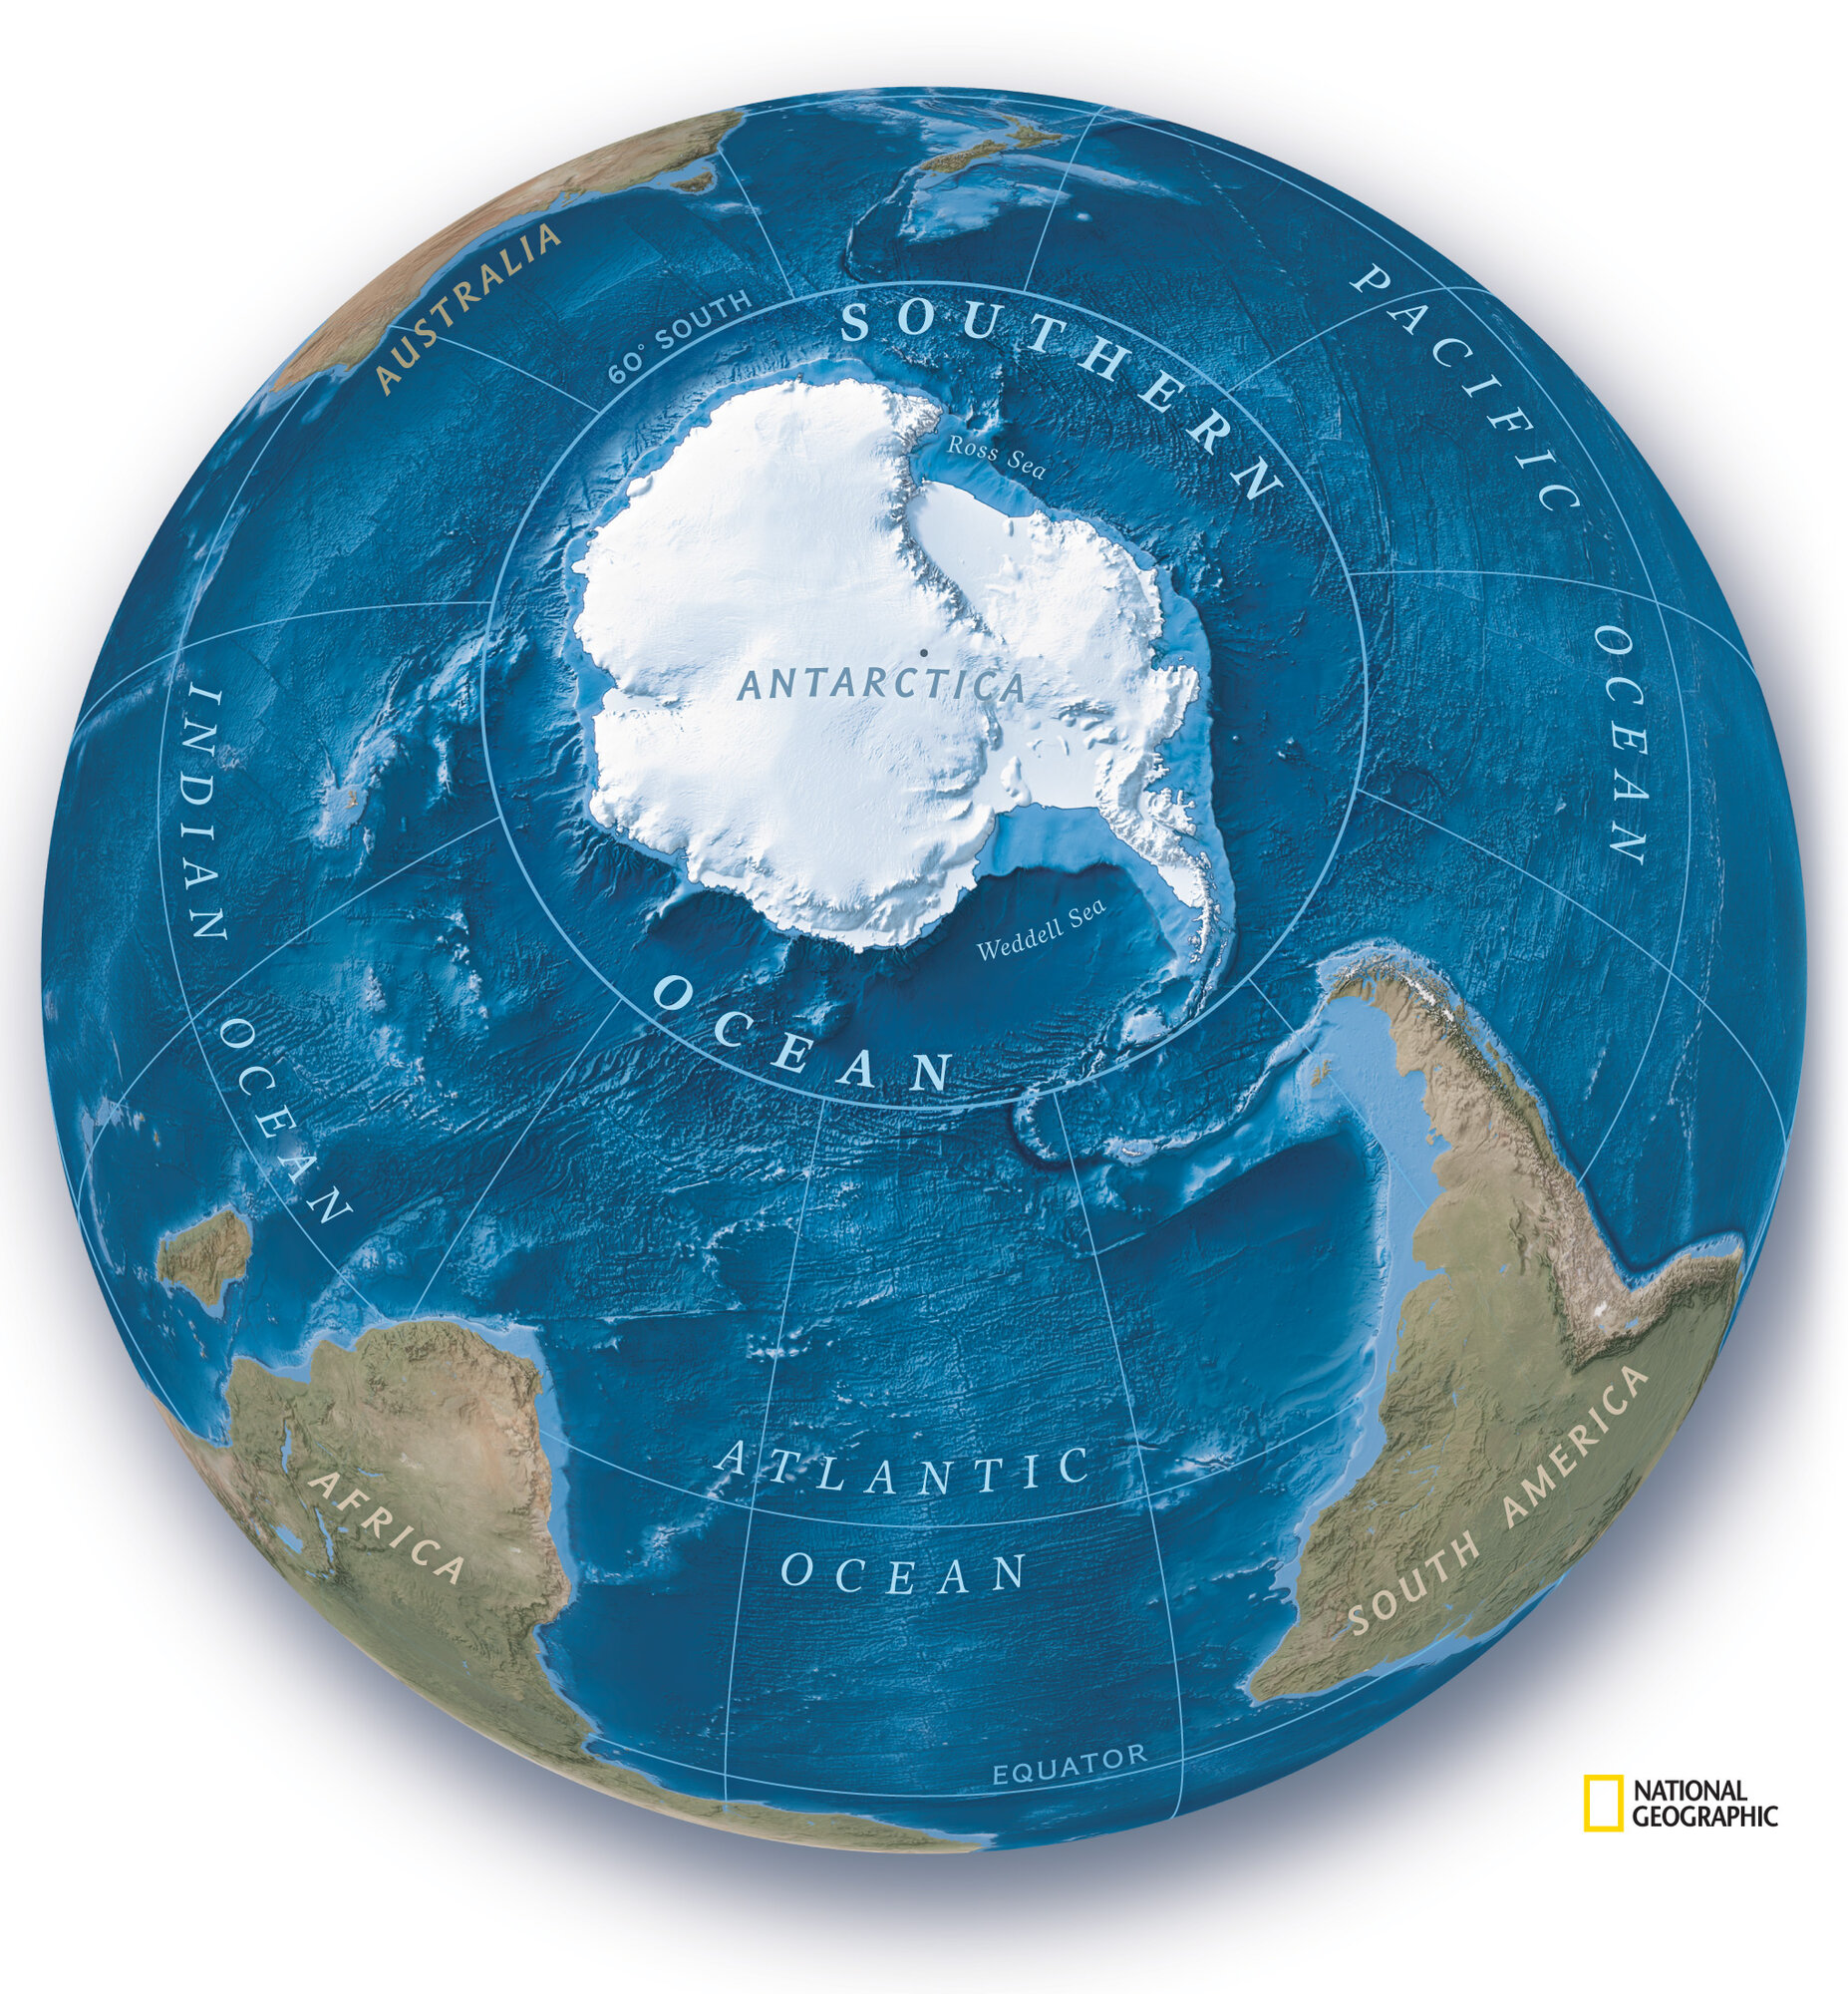 ngenvironment-2106-southern-ocean-globe_